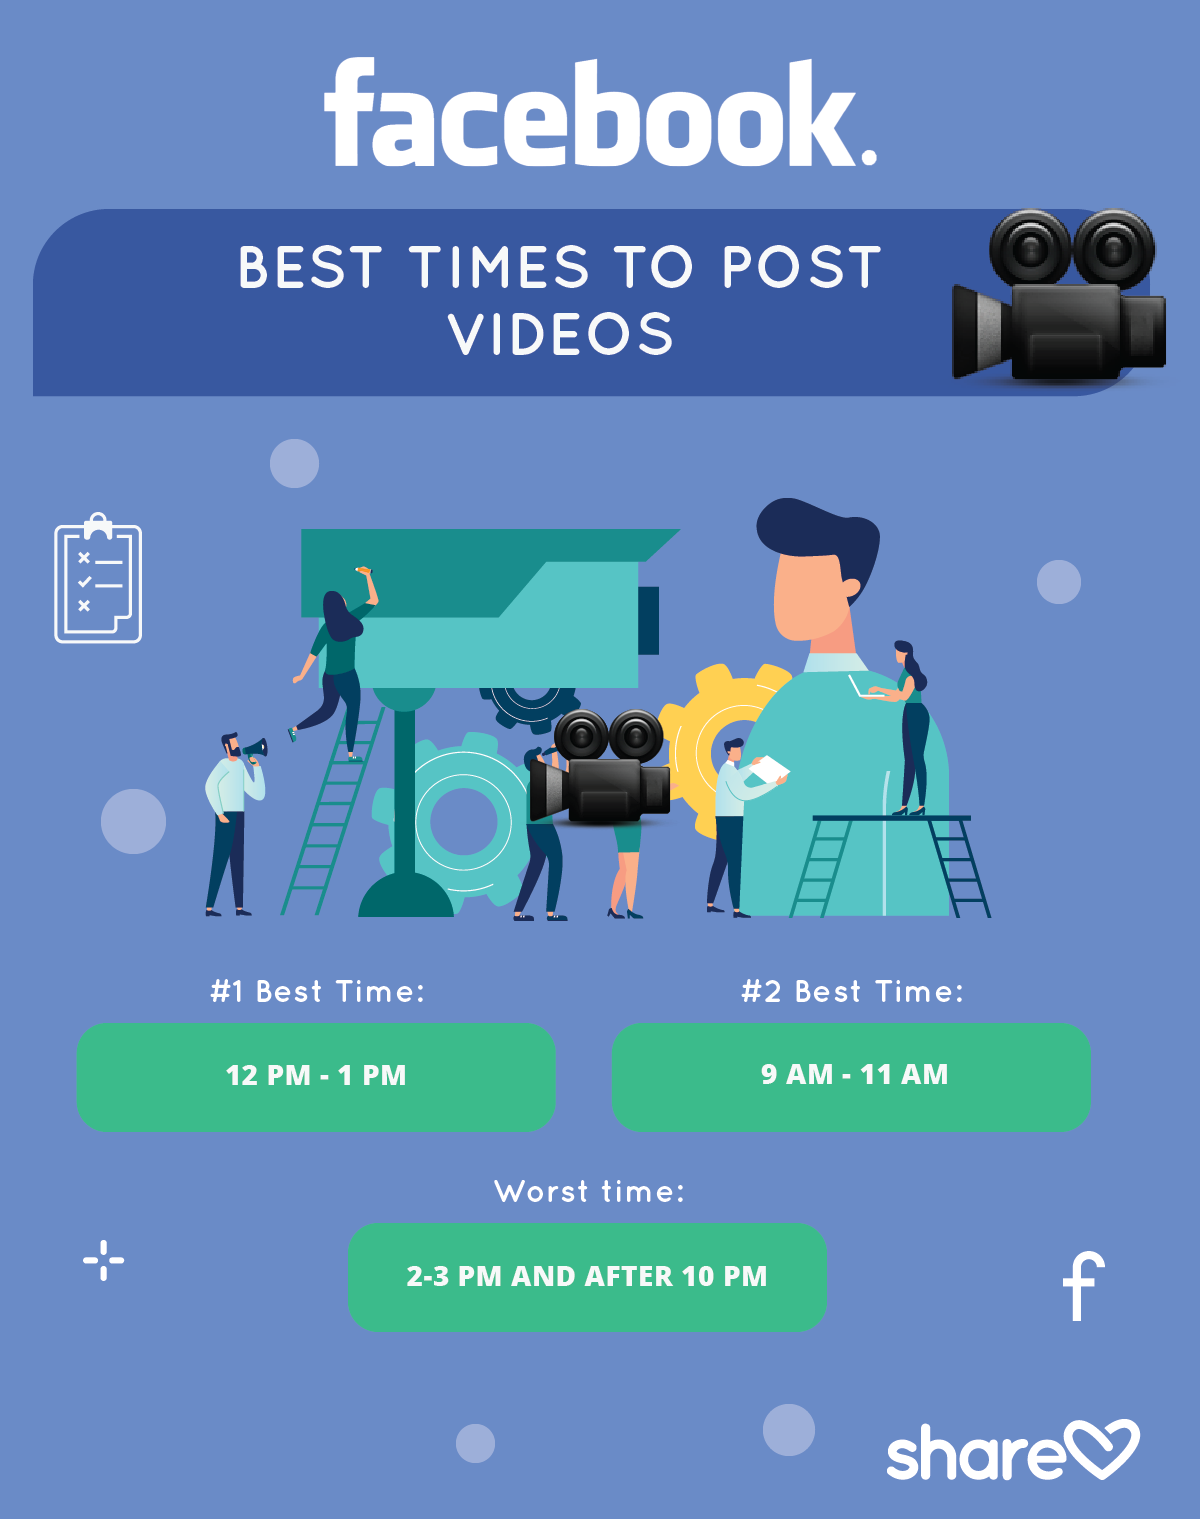 Best Times to Post Videos on Facebook